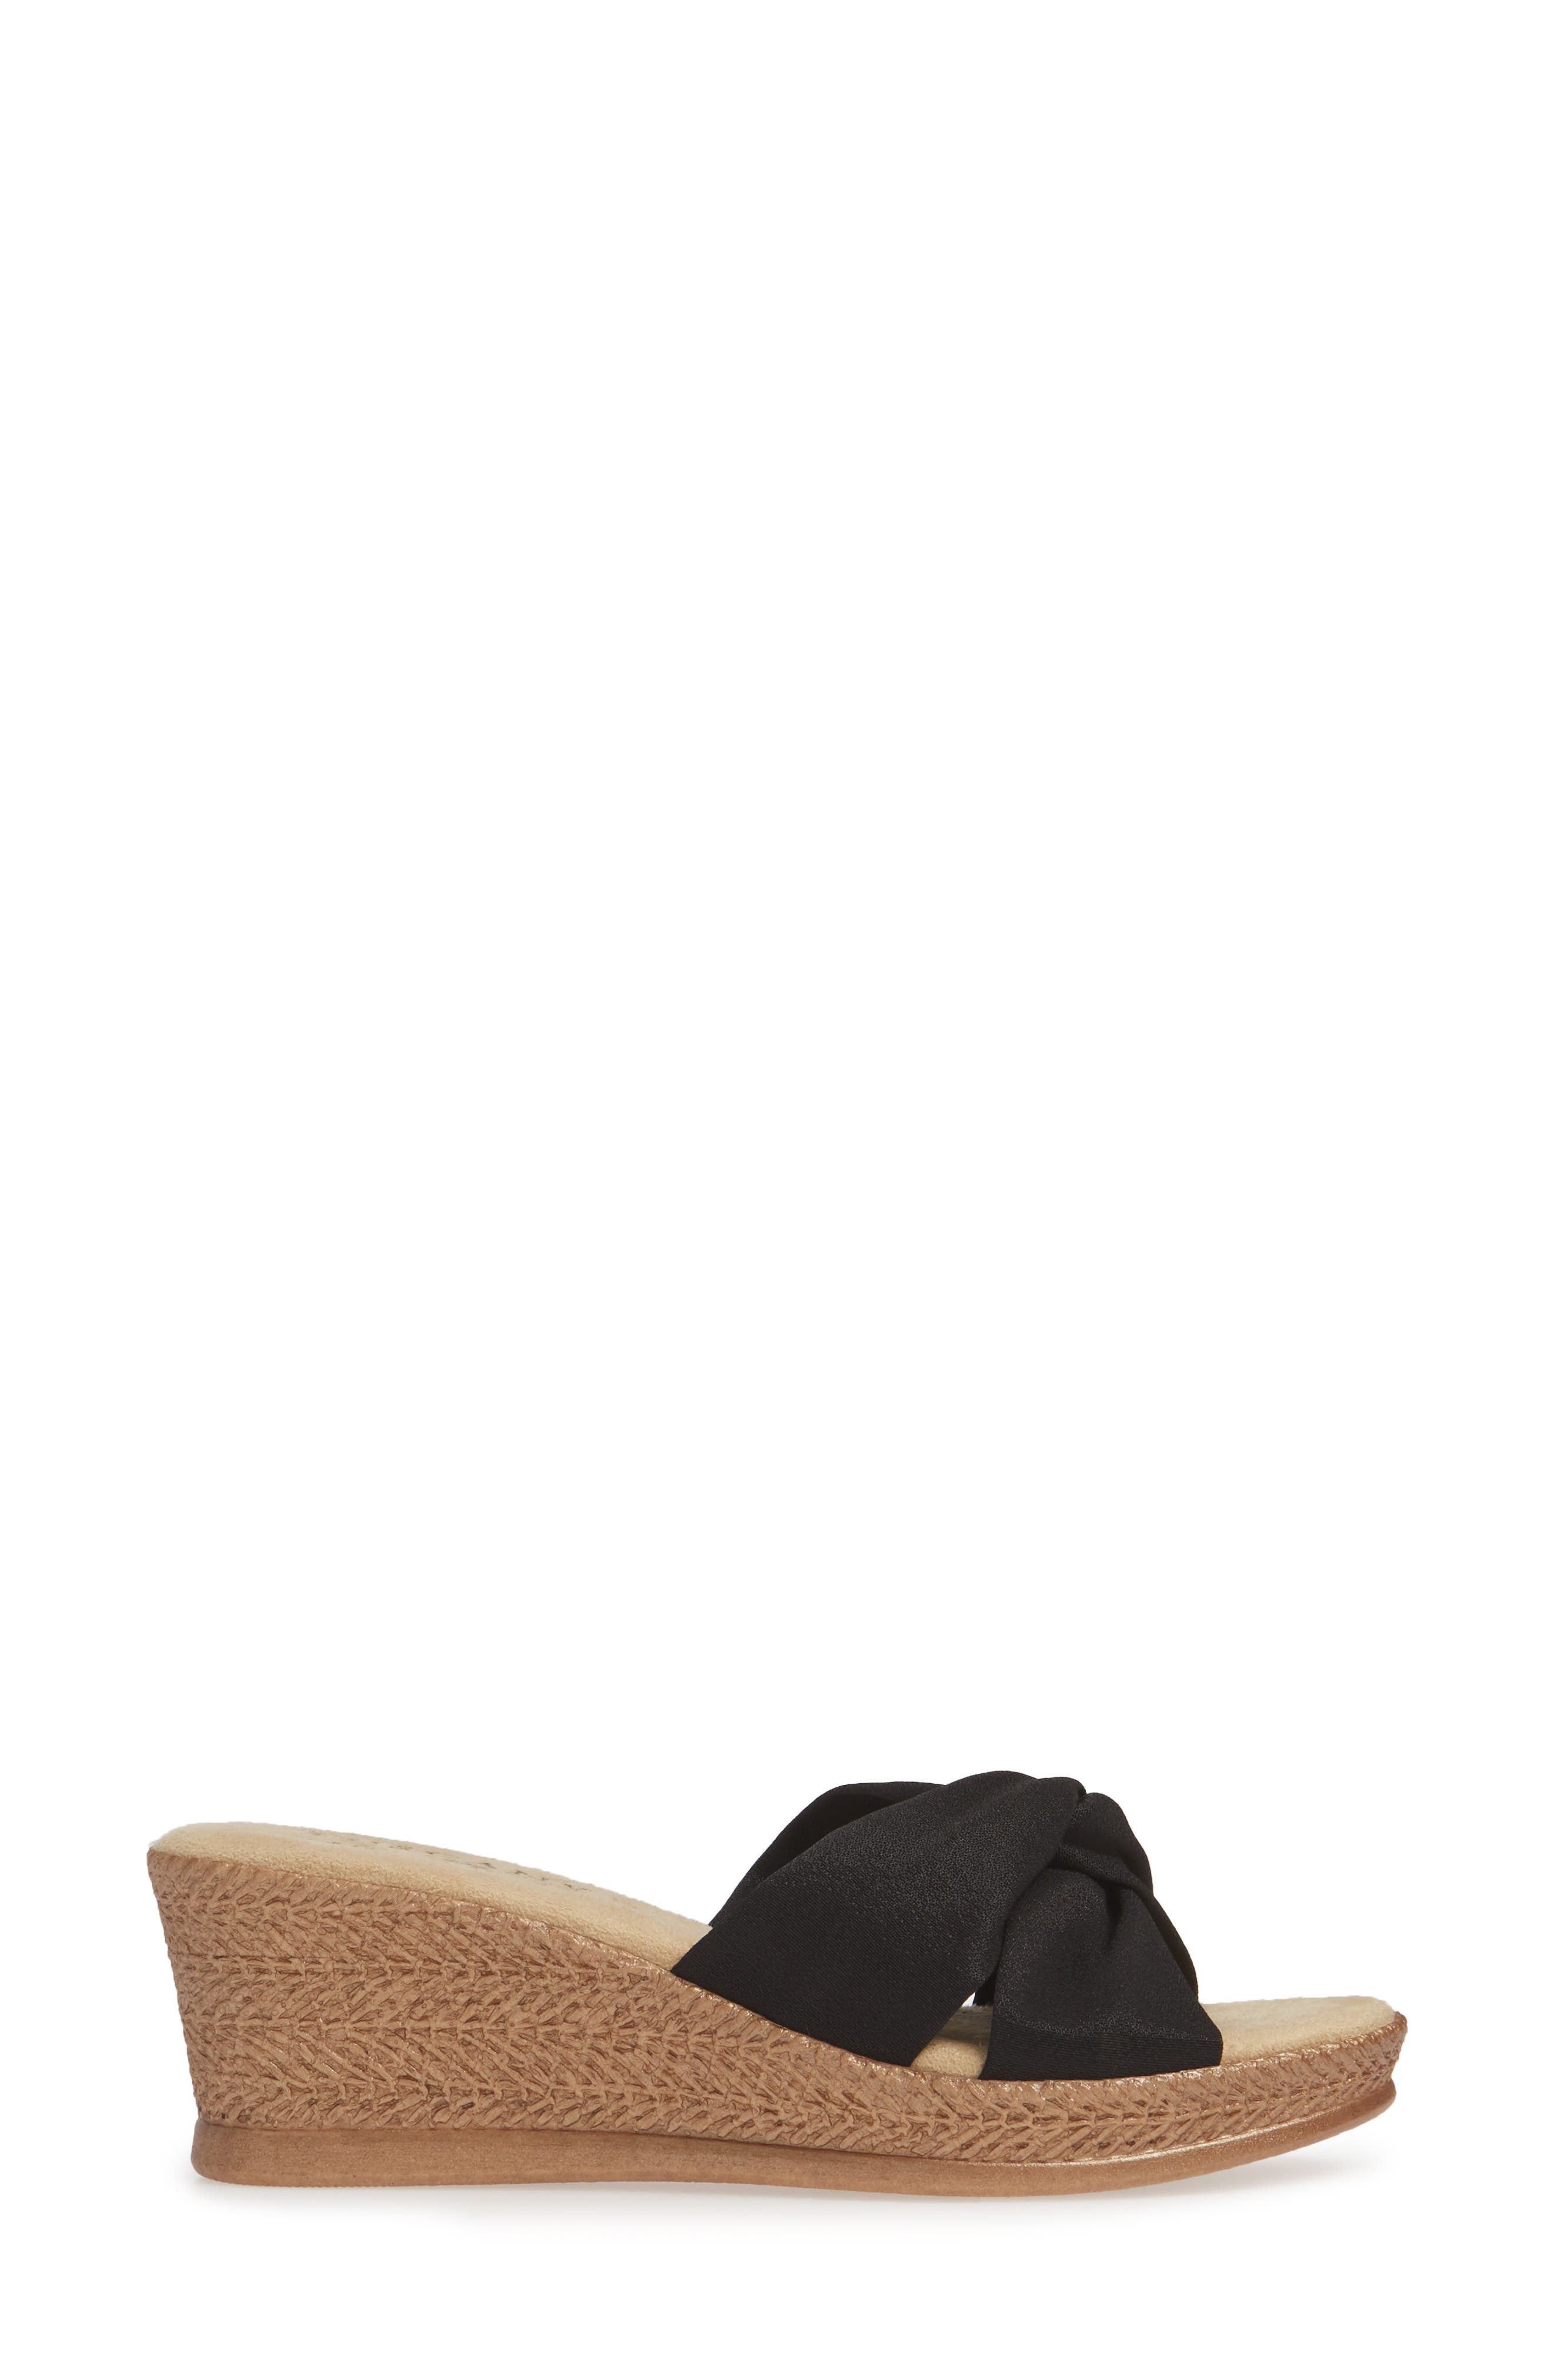 TUSCANY BY EASY STREET<SUP>®</SUP>, Dinah Platform Wedge Sandal, Alternate thumbnail 3, color, BLACK FABRIC